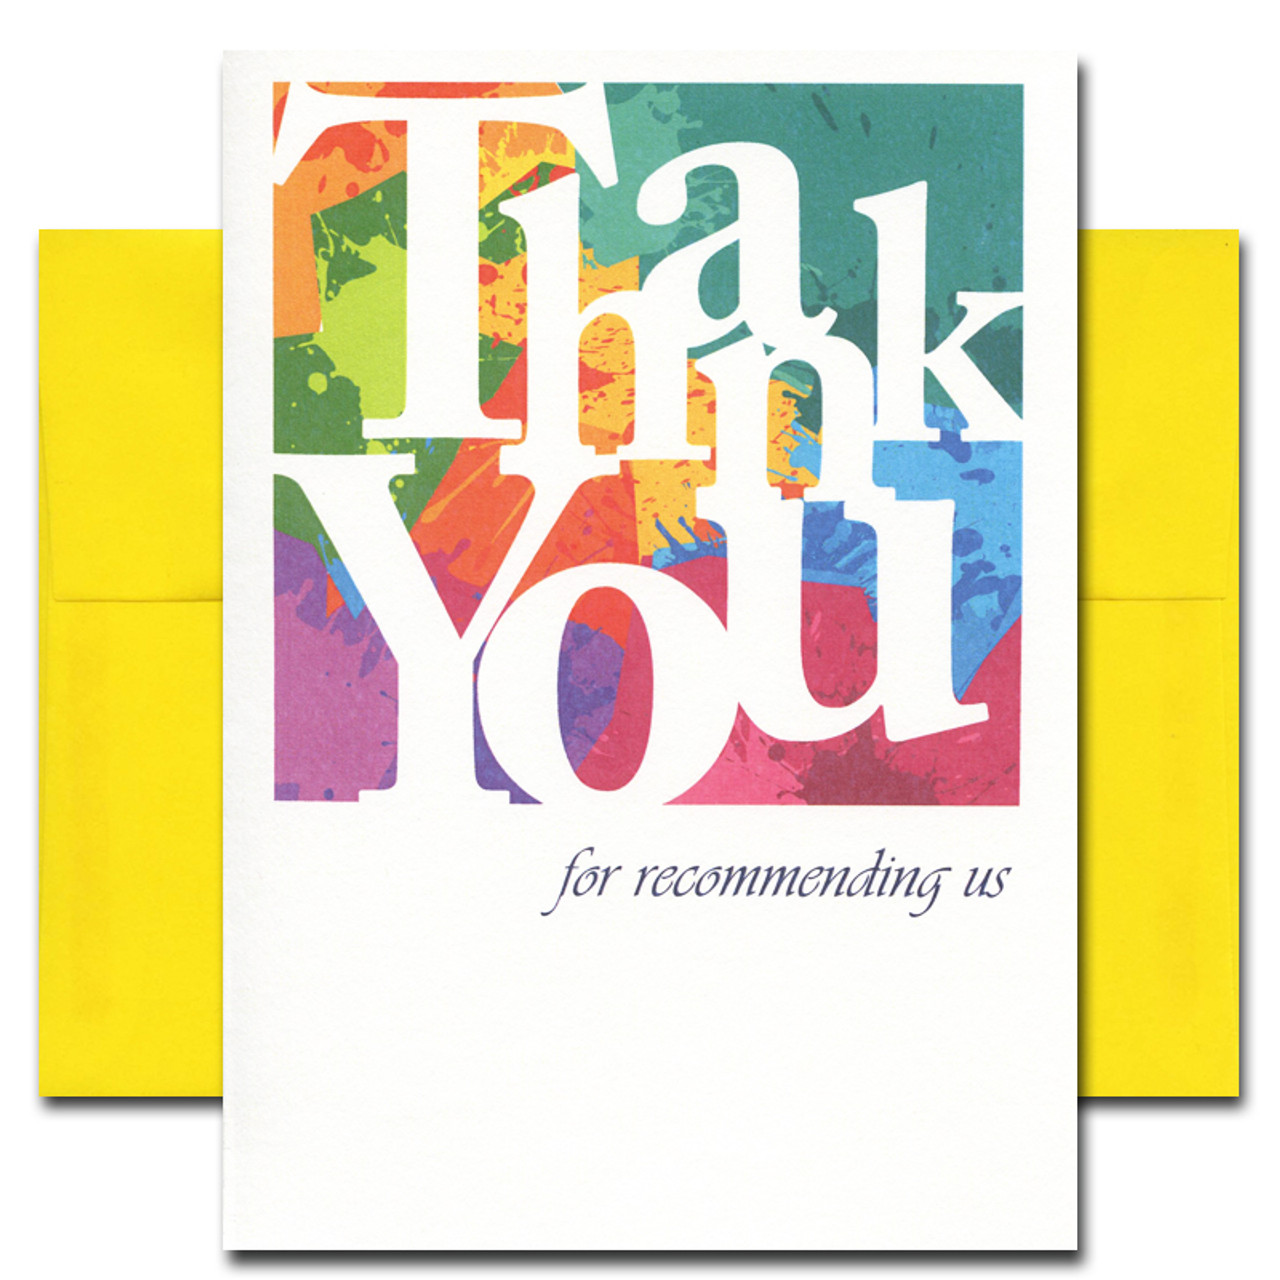 Referral Thank You - Color Blocks. Cover reads: Thank You for recommending us